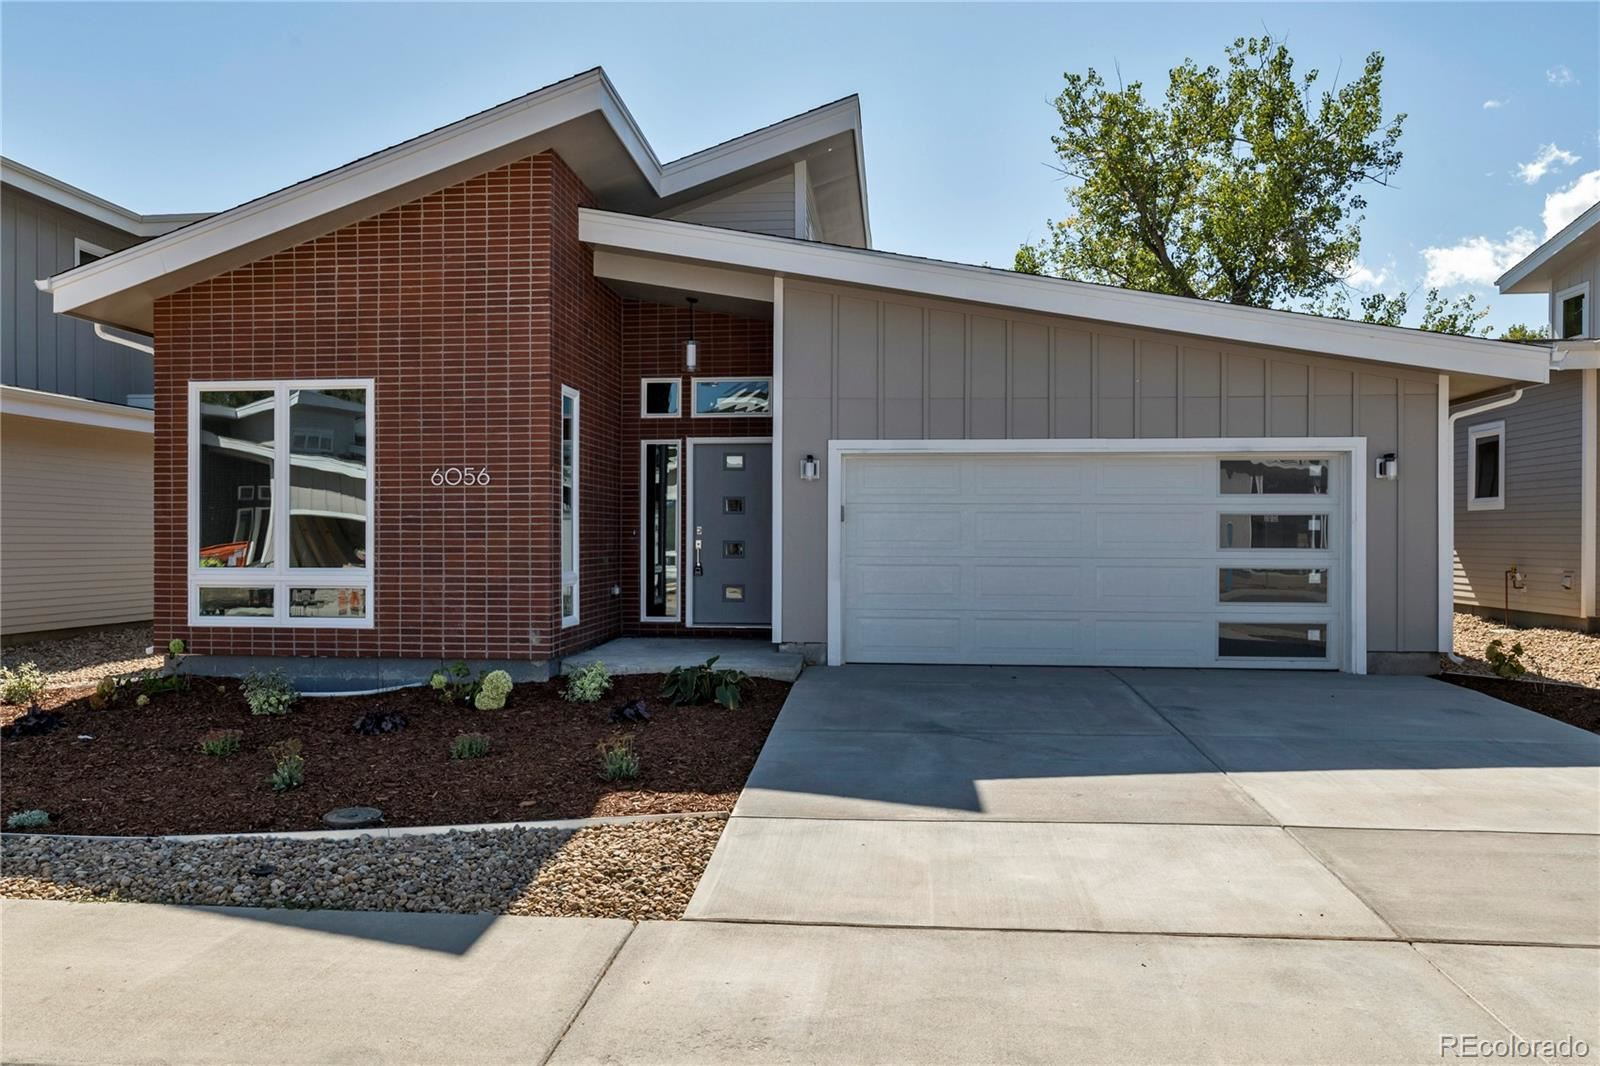 6056 W Keene Avenue, Lakewood, CO 80235 - #: 6337689